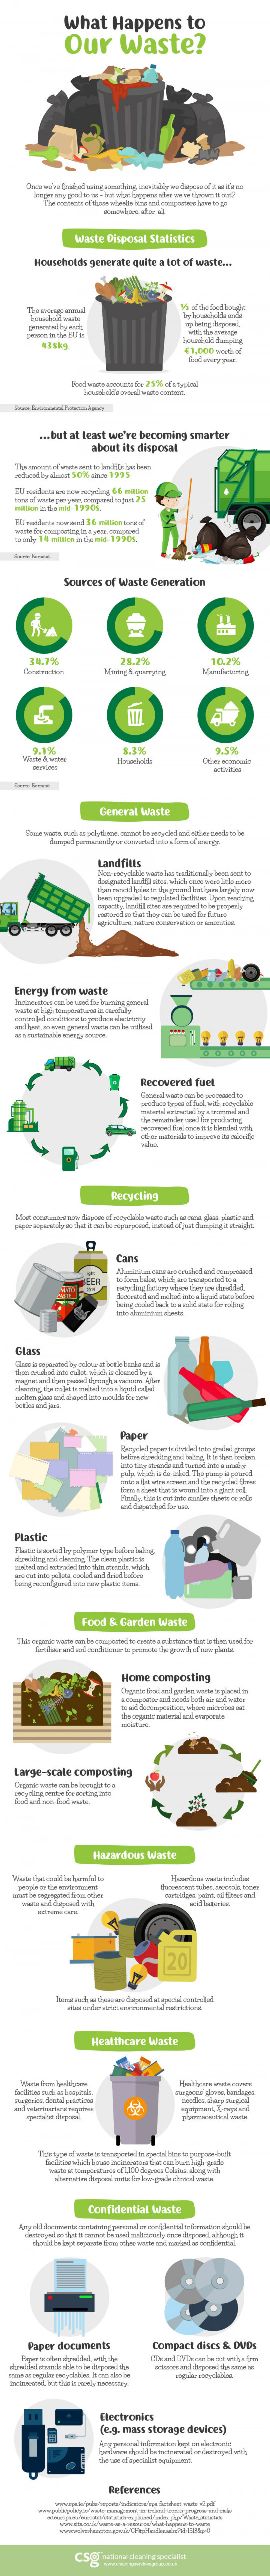 What happens to our waste? [Infographic]